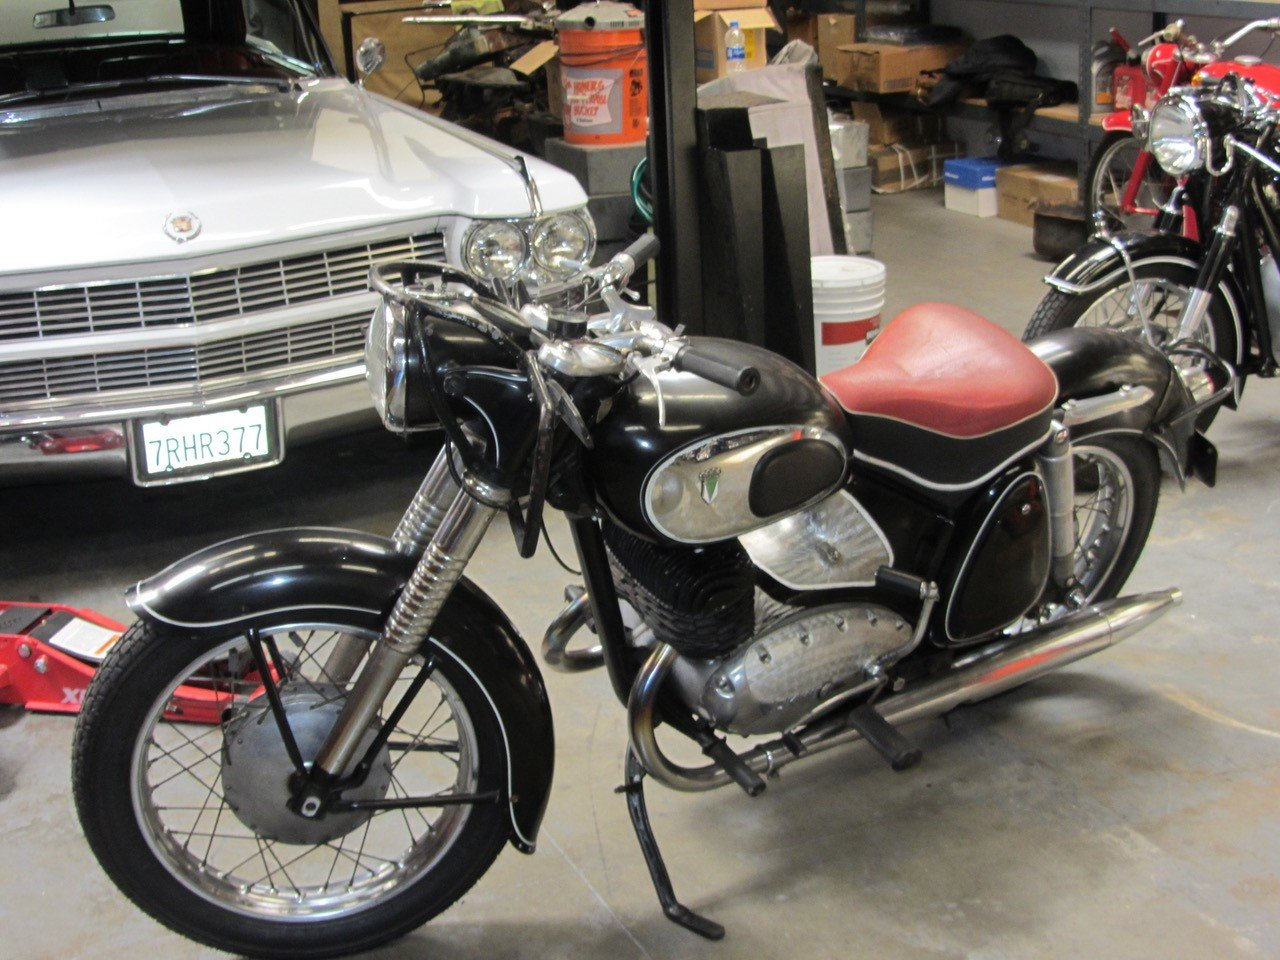 DKW RT 350 S 1956 For Sale (picture 1 of 6)